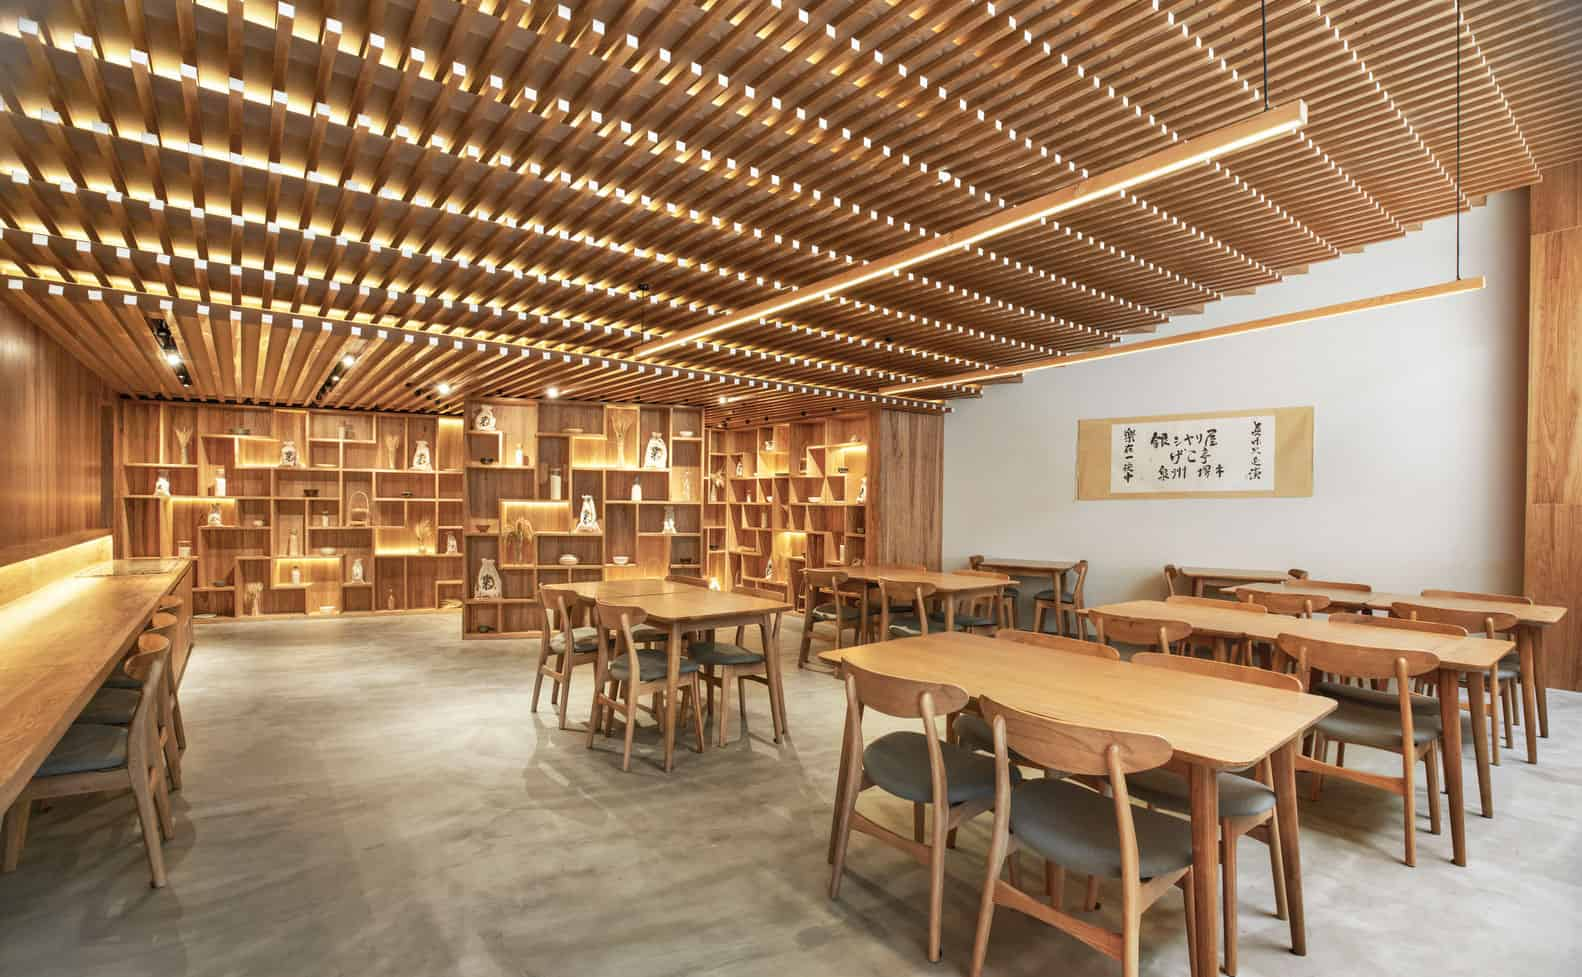 Restaurant in Shanghai, China designed by Tsutsumi & Associates